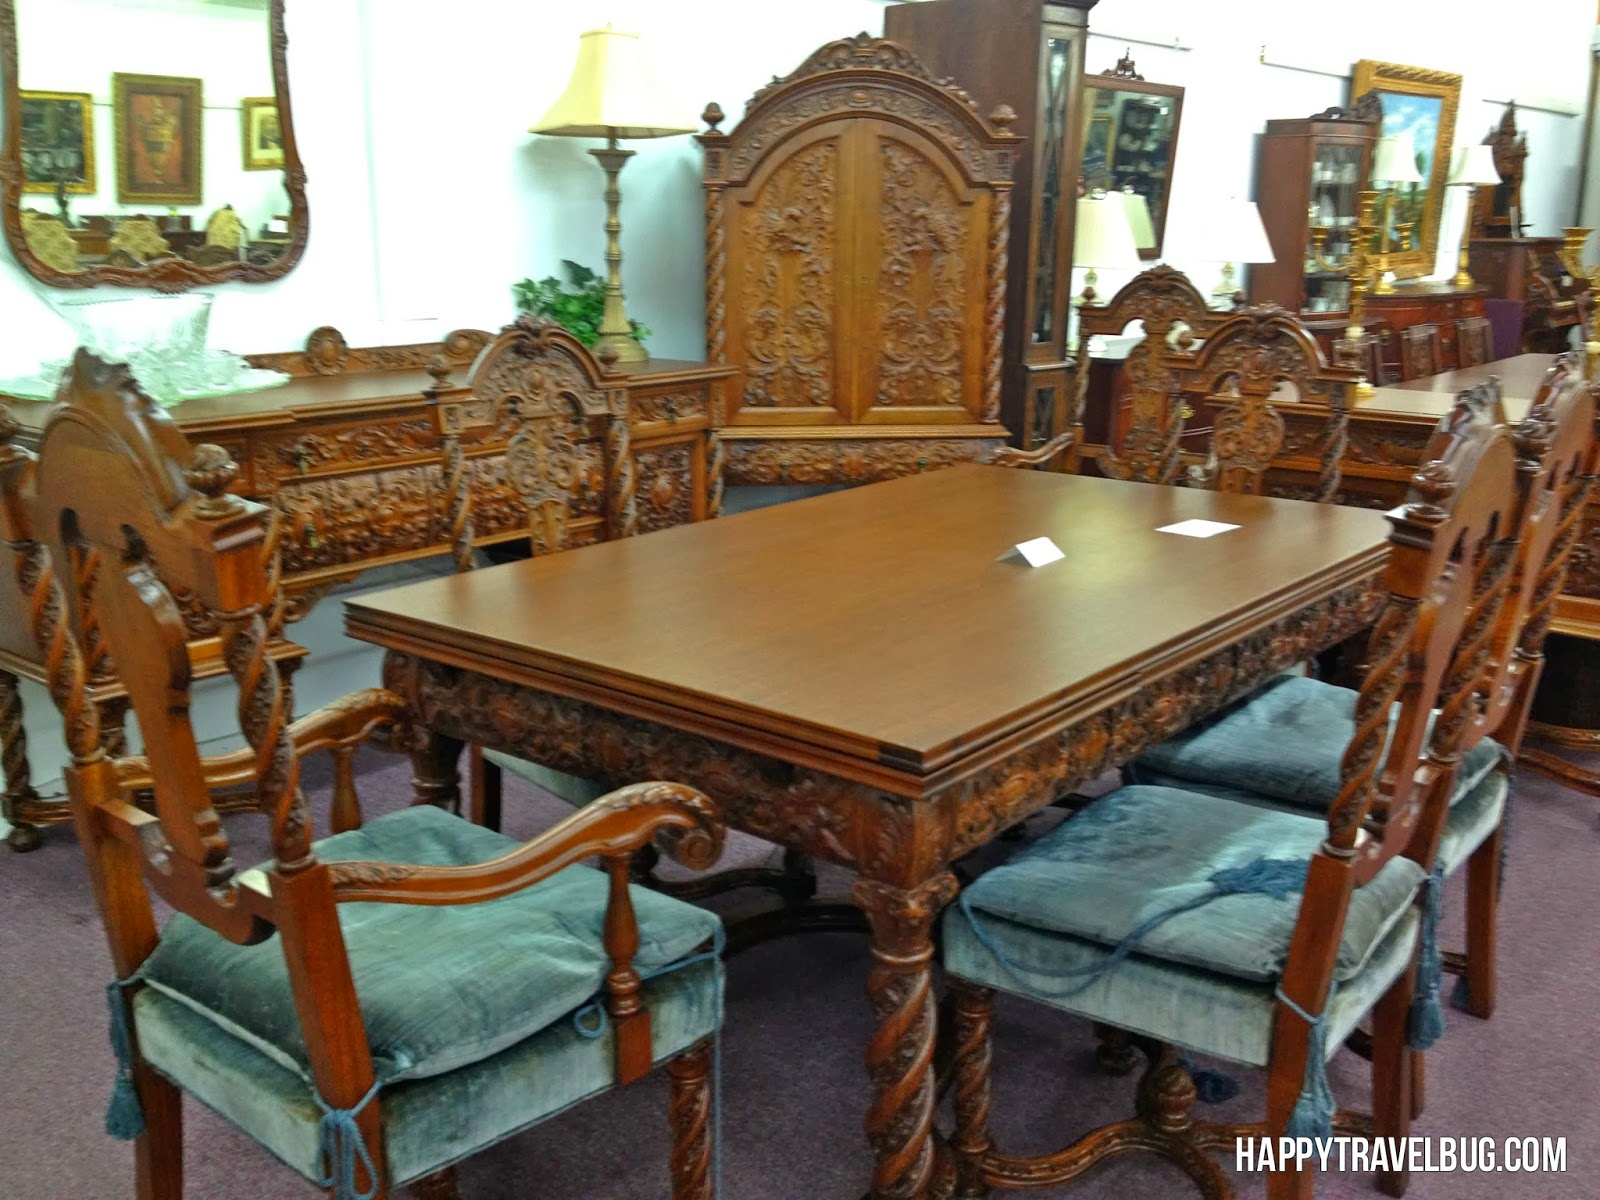 Antique Dining Table from Morris Antiques in Keo, Arkansas